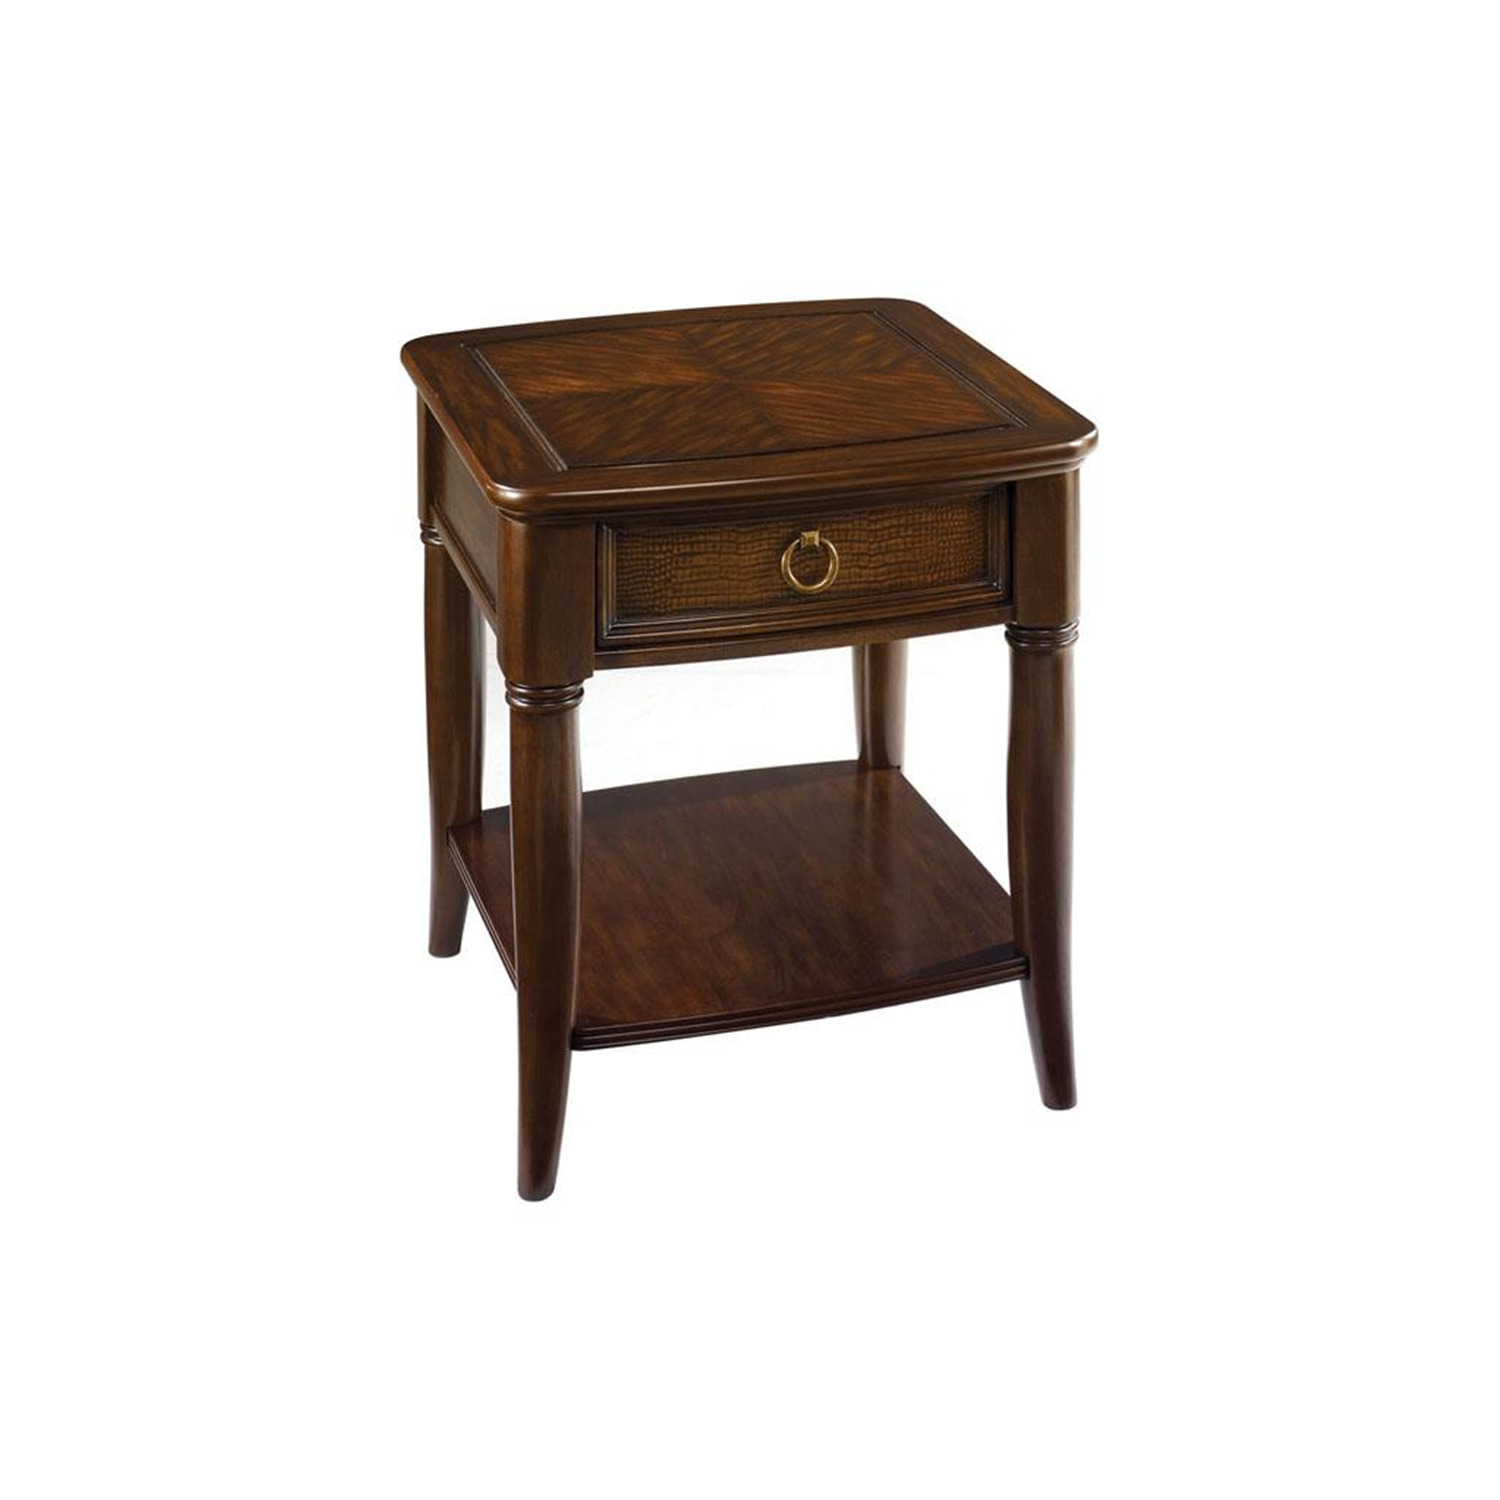 Hammary magellan drawer end table by oj commerce for End tables with drawers